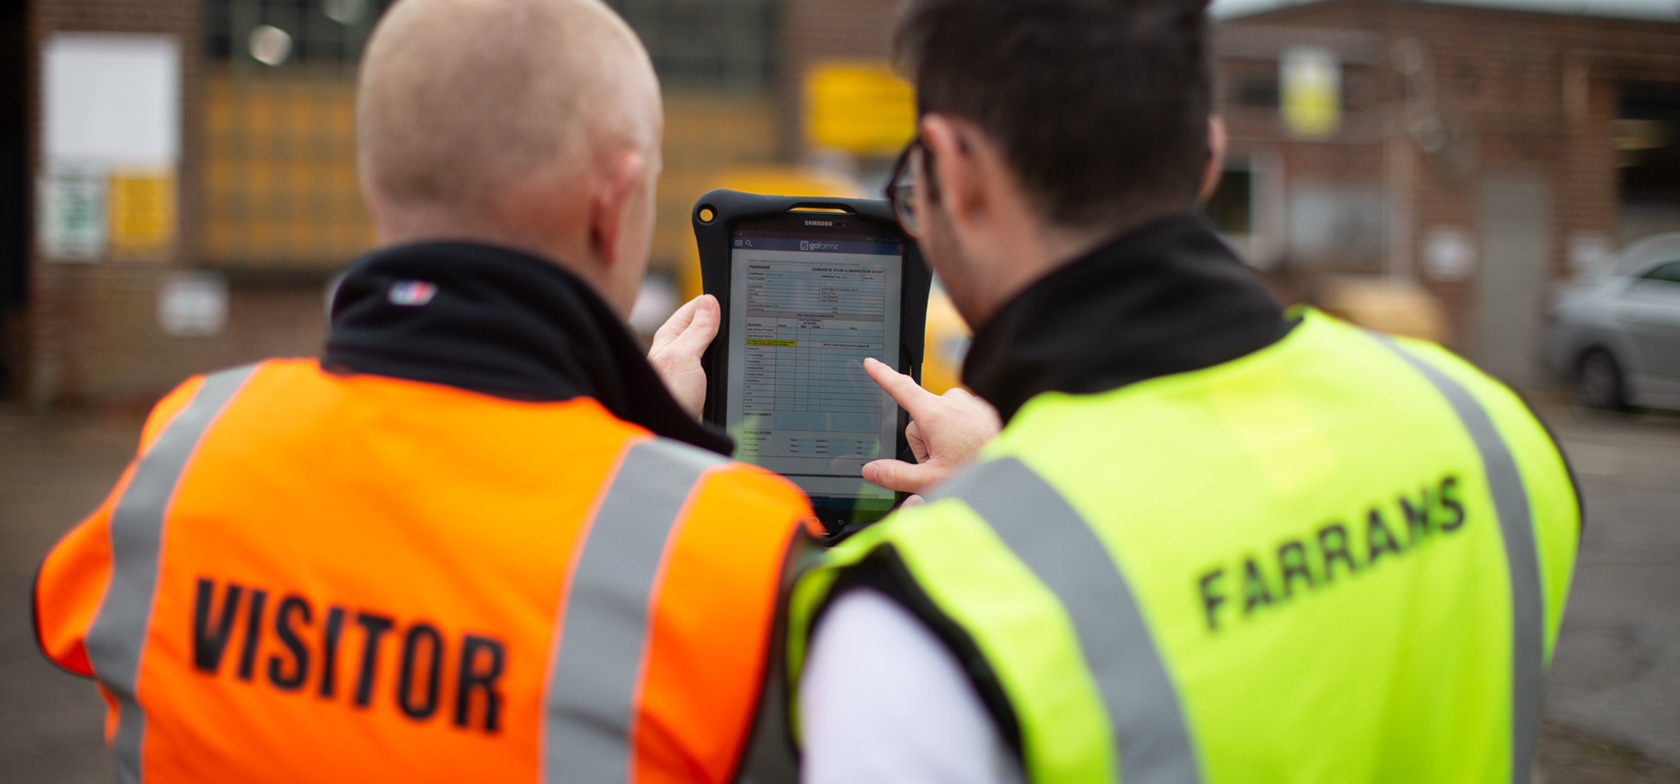 Farrans construction team uses GoFormz mobile forms on iPads in the field to gather and route data